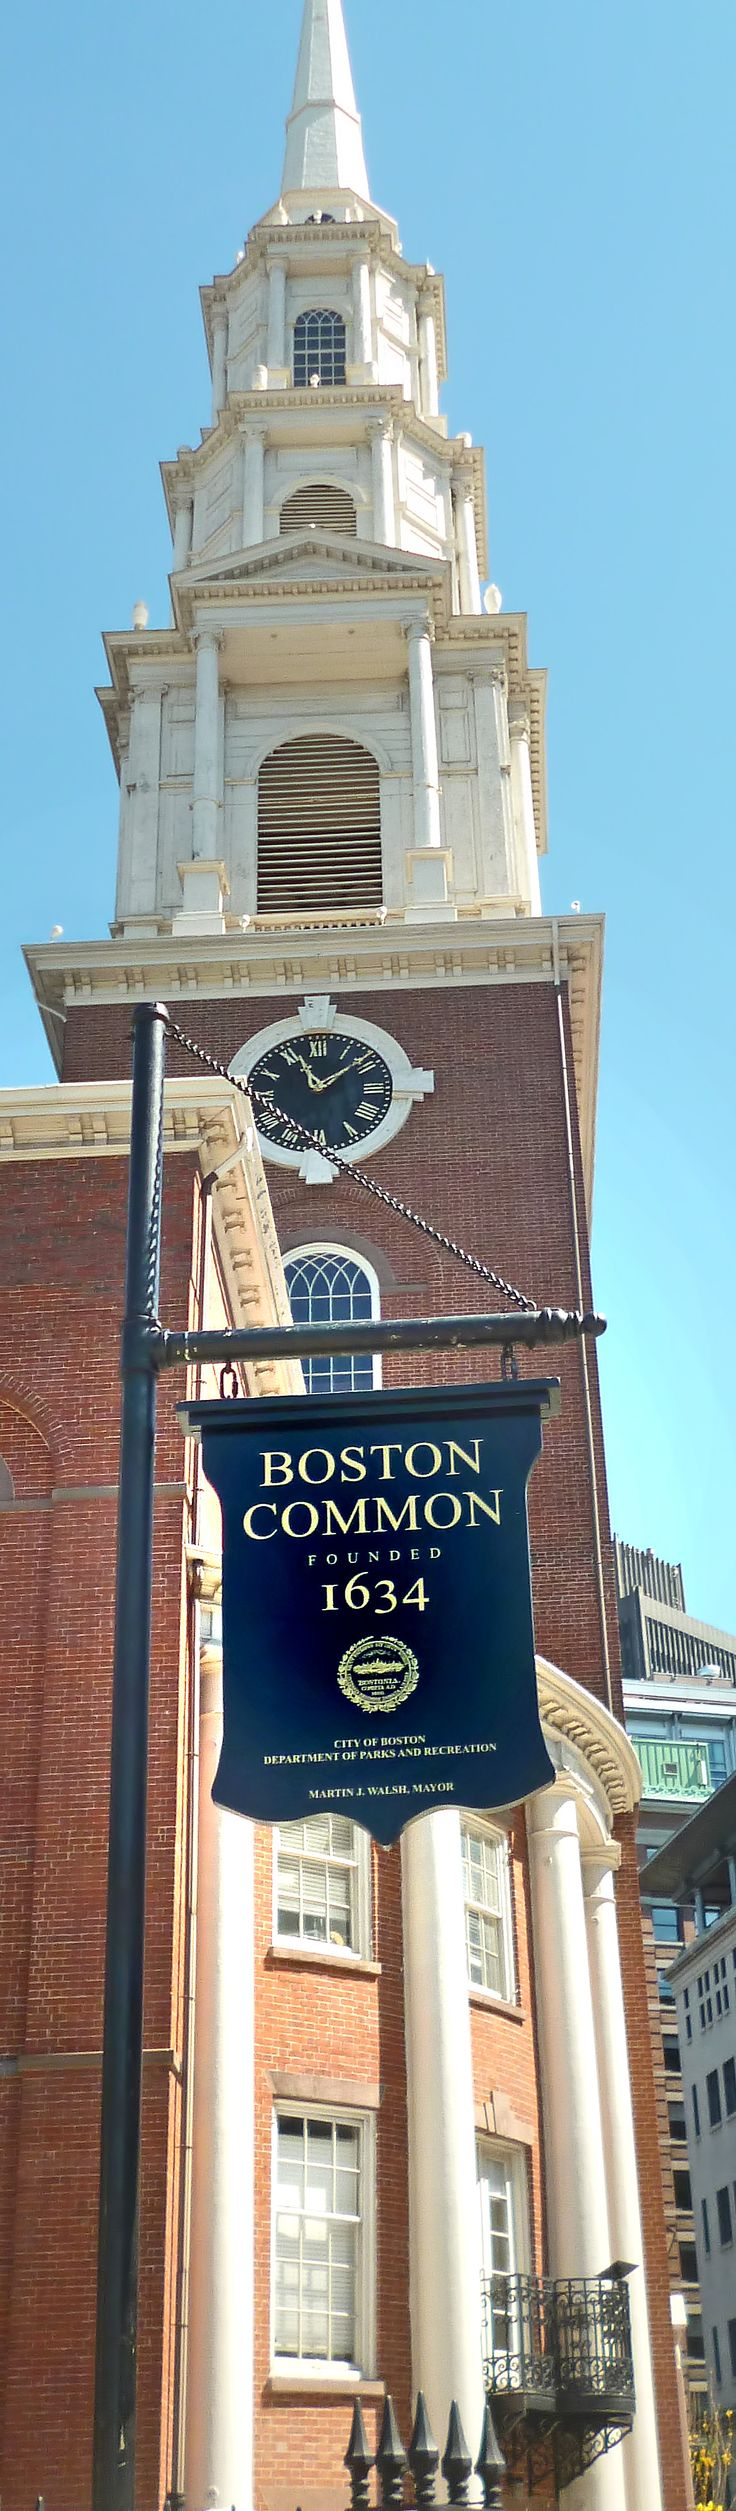 Park Street Church was founded in 1809, at the corner of Park and Tremont Streets, atop the site of Boston's town grain storage building, or granary.